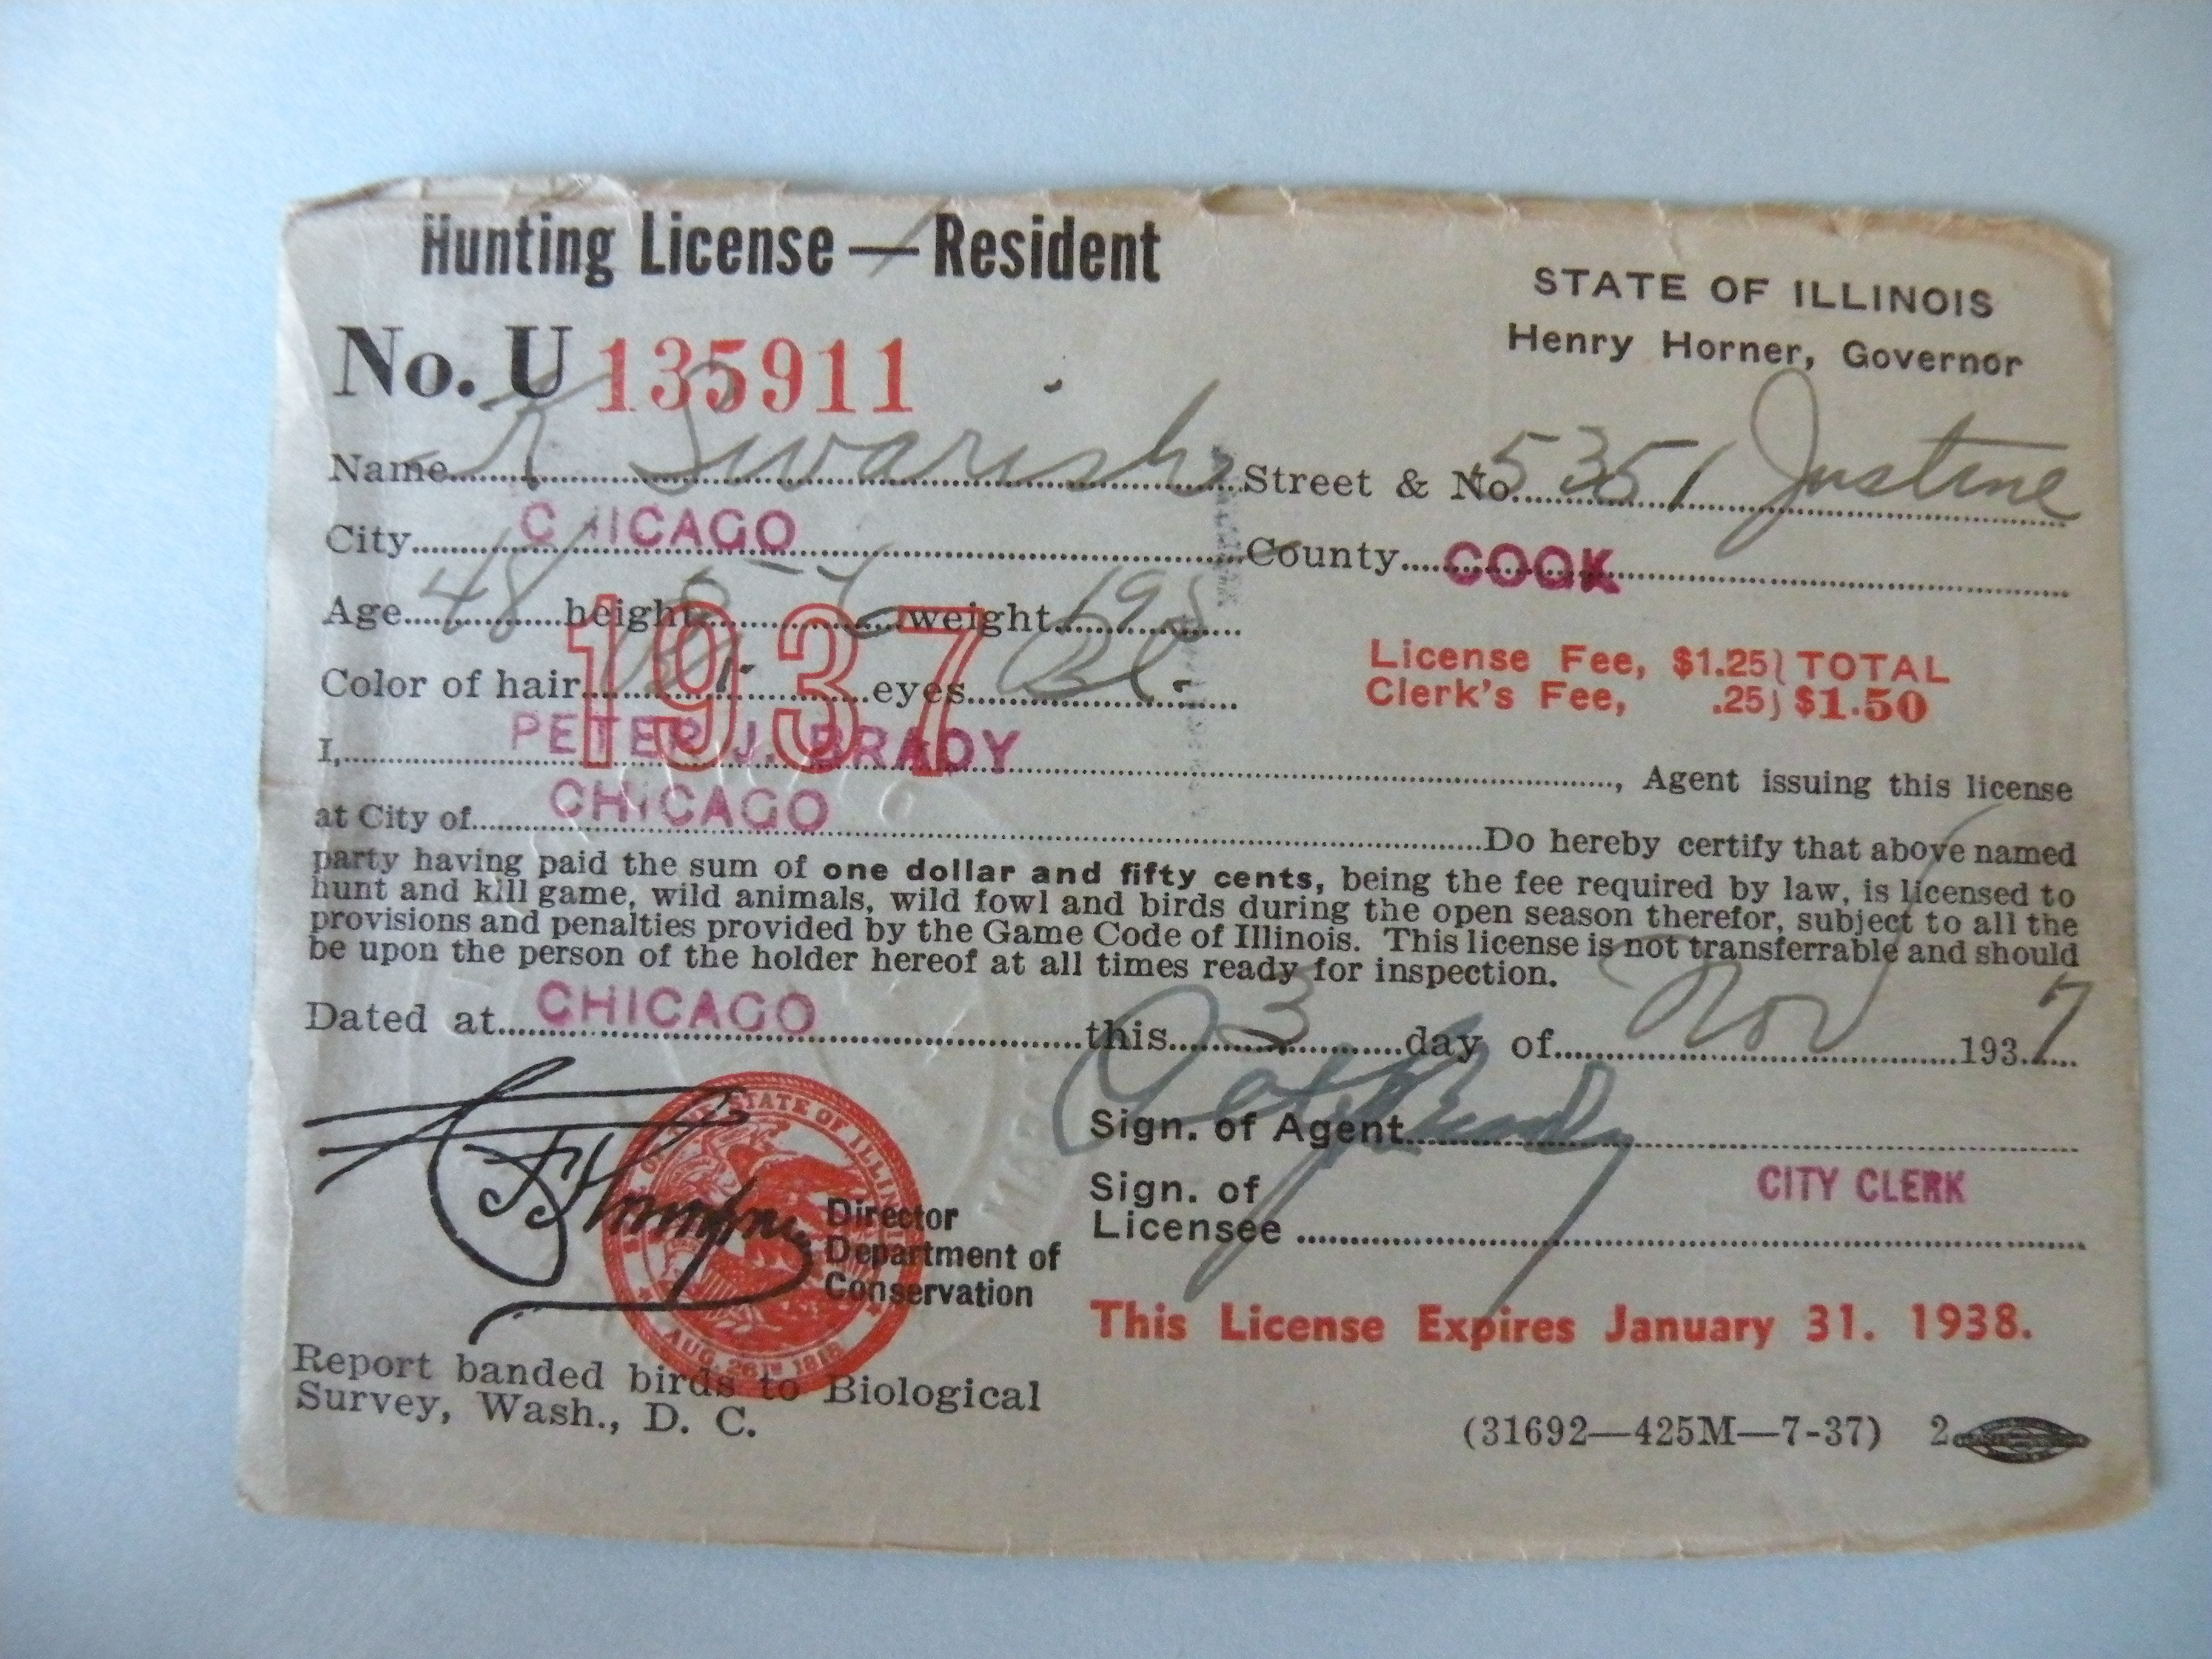 Kostanty gust iwanski 39 s 1937 illinois hunting license for Fishing license il